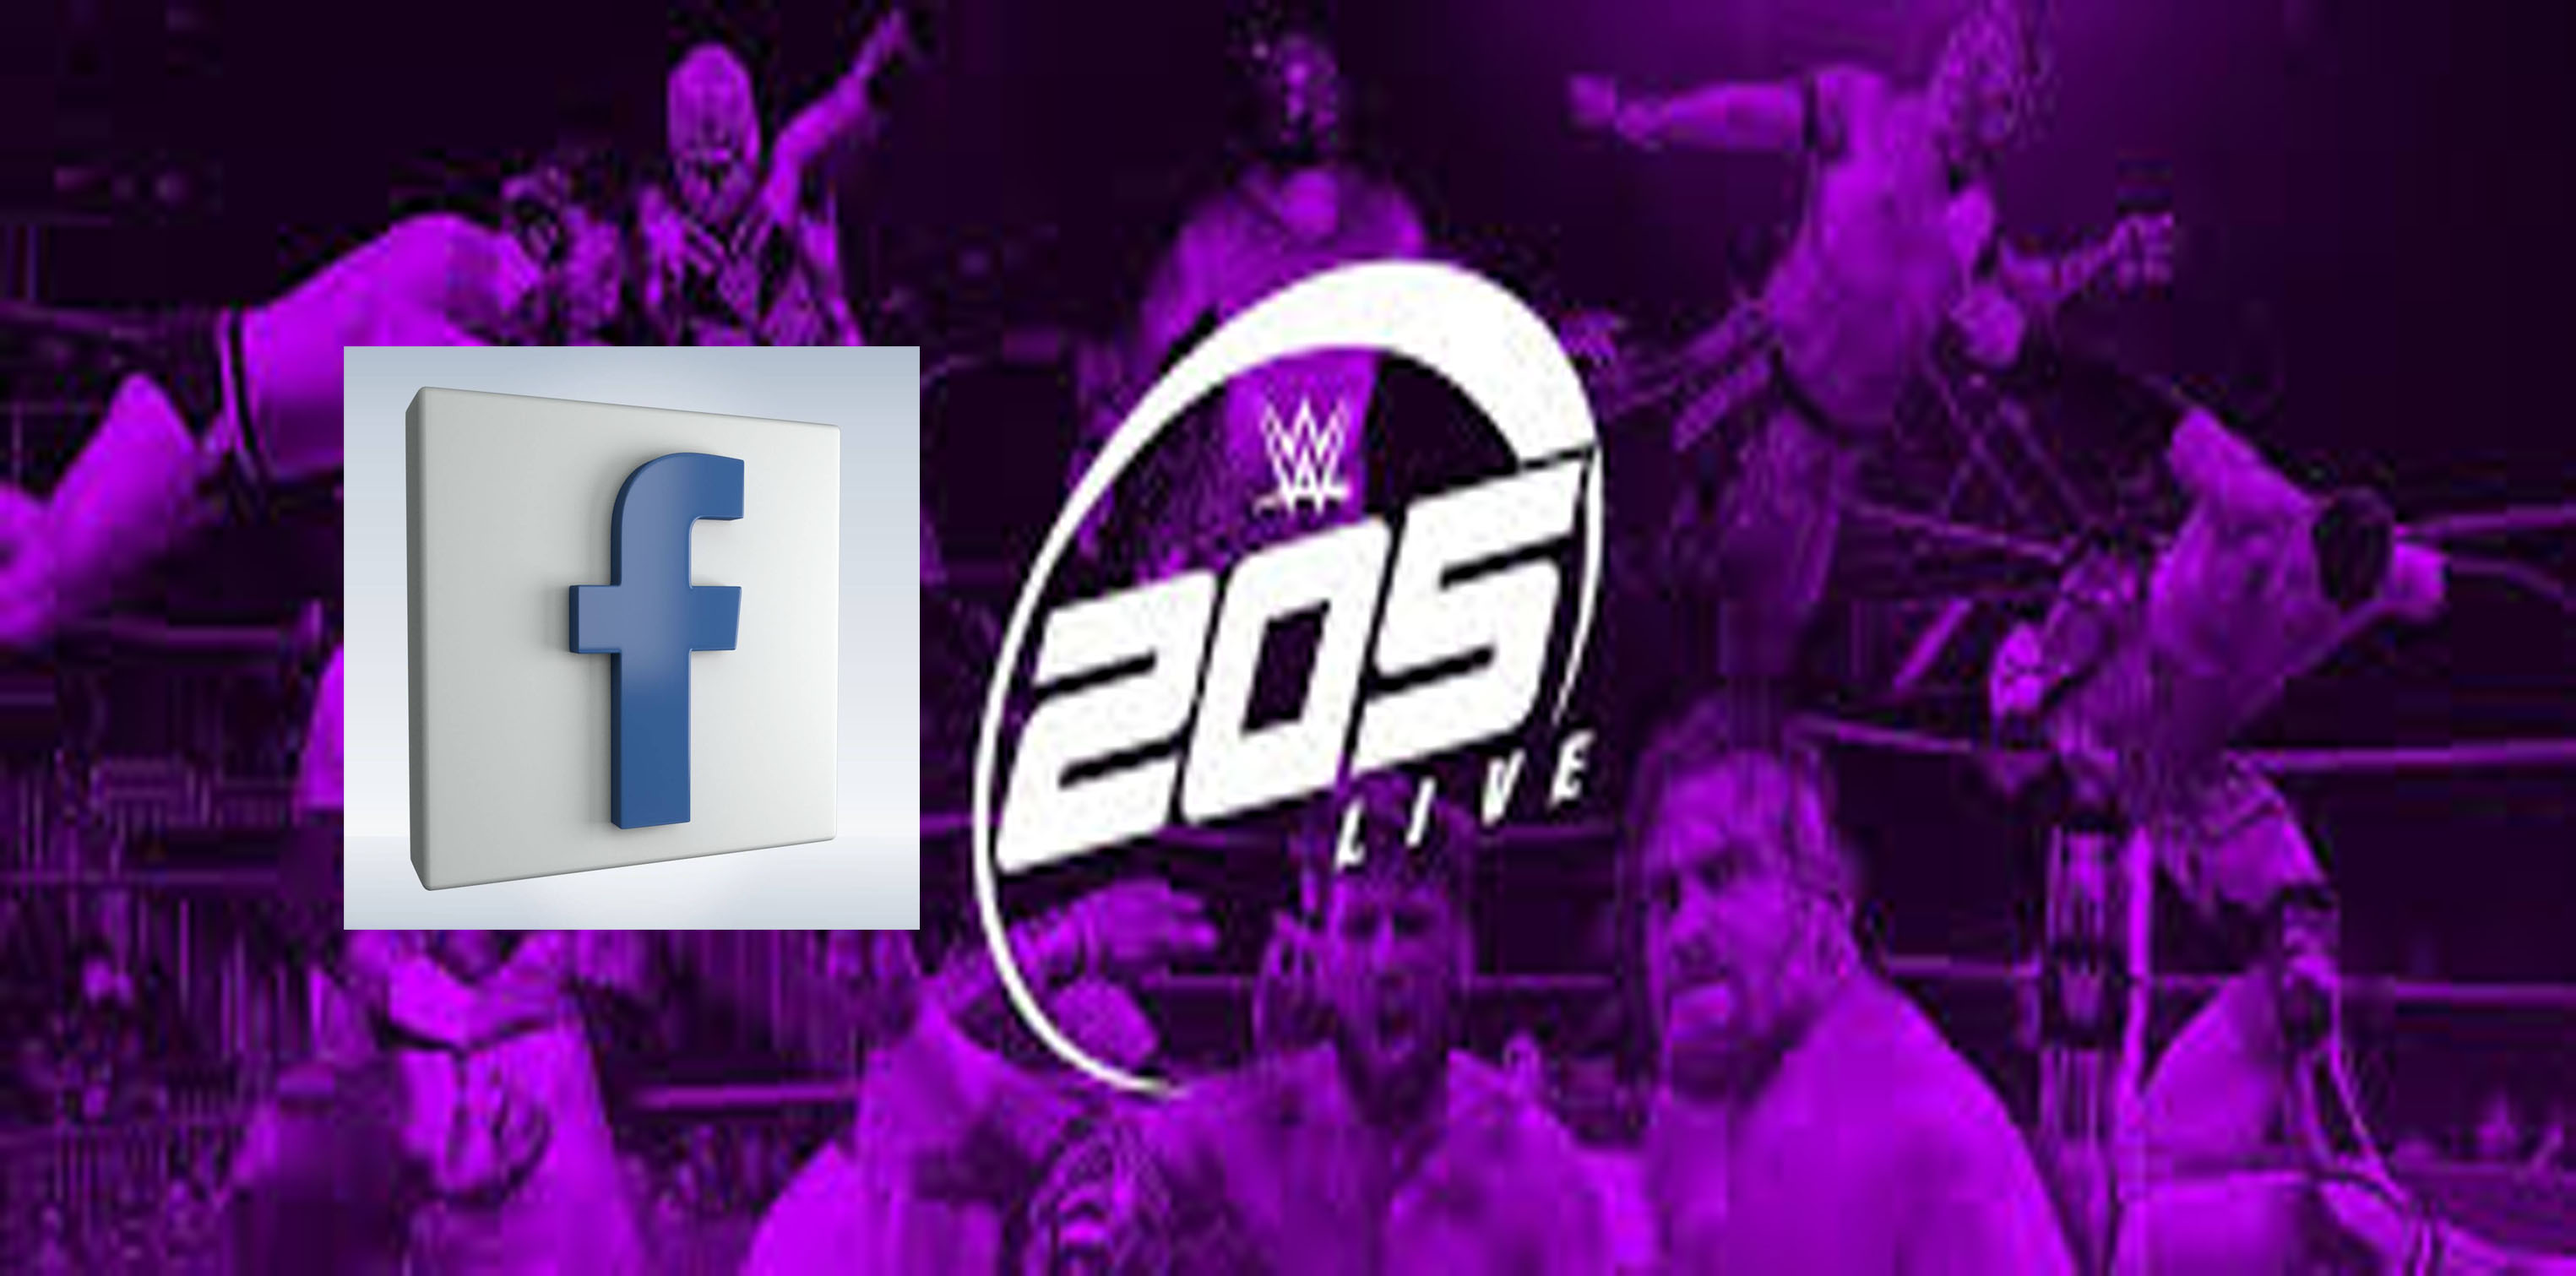 Facebook WWE 205 Live – WWE Groups and Pages